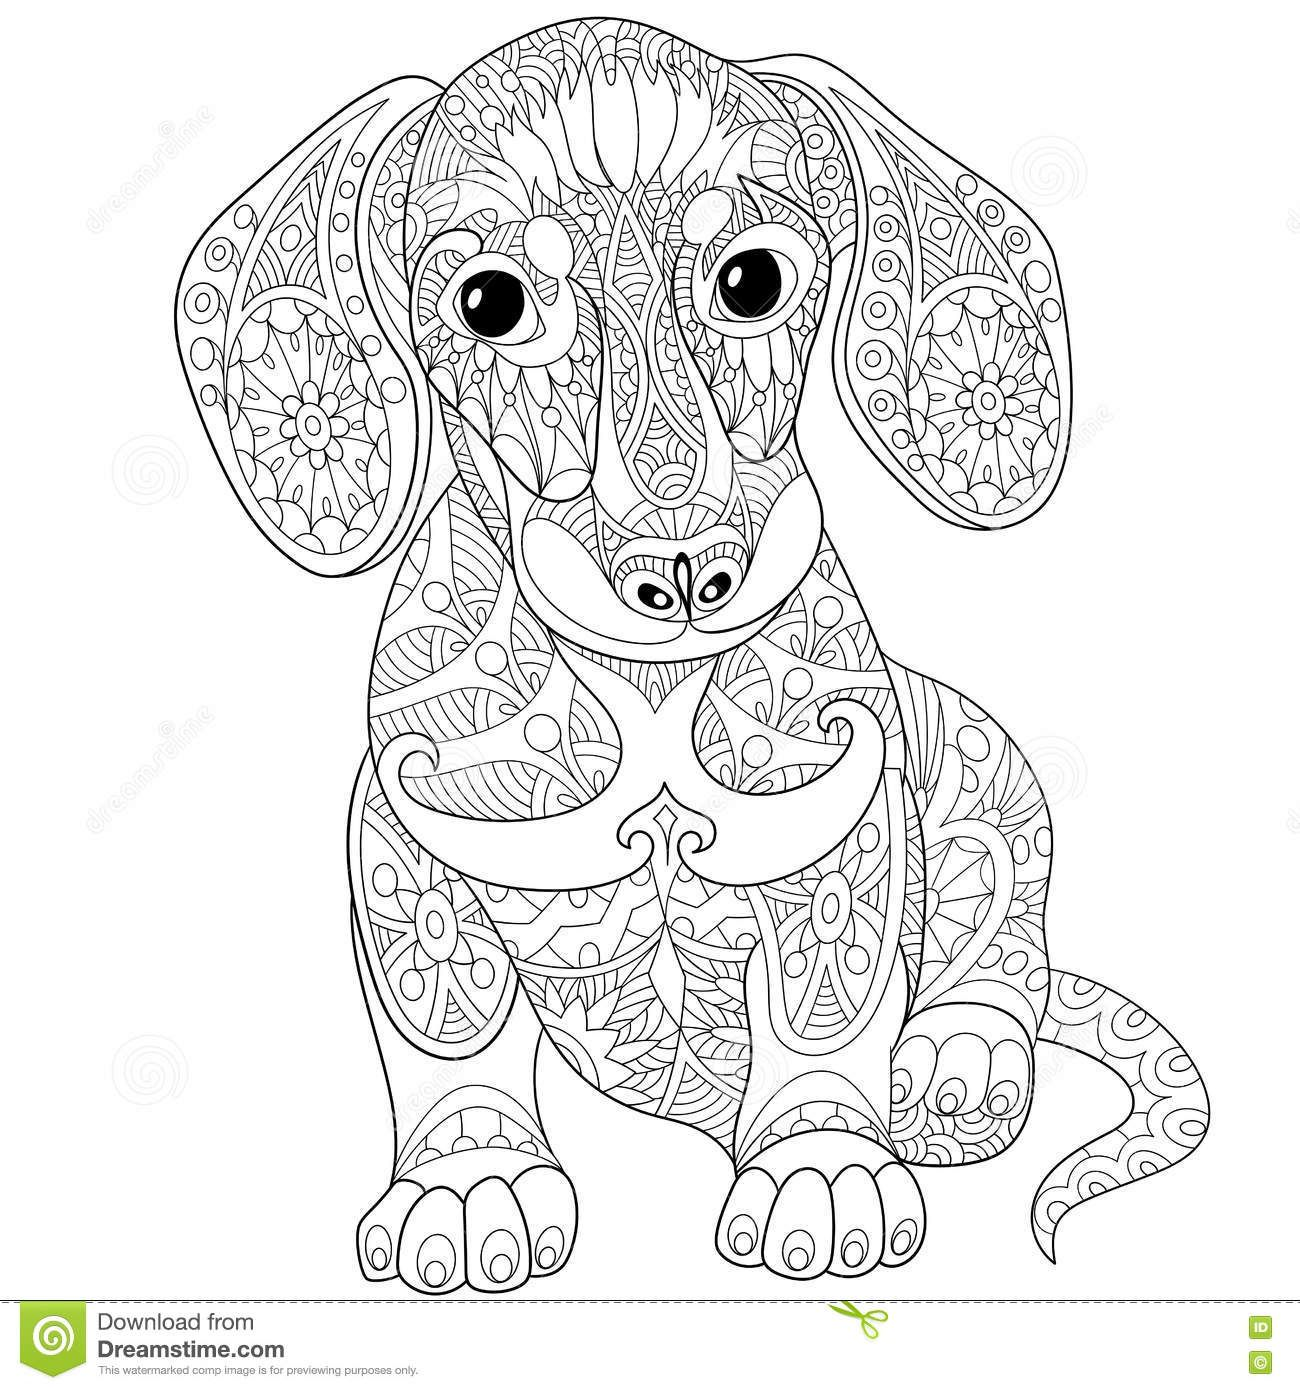 zentangle stylized dachshund dog from over million high quality stock photos images ve coloring pages Weiner Dog Coloring Page